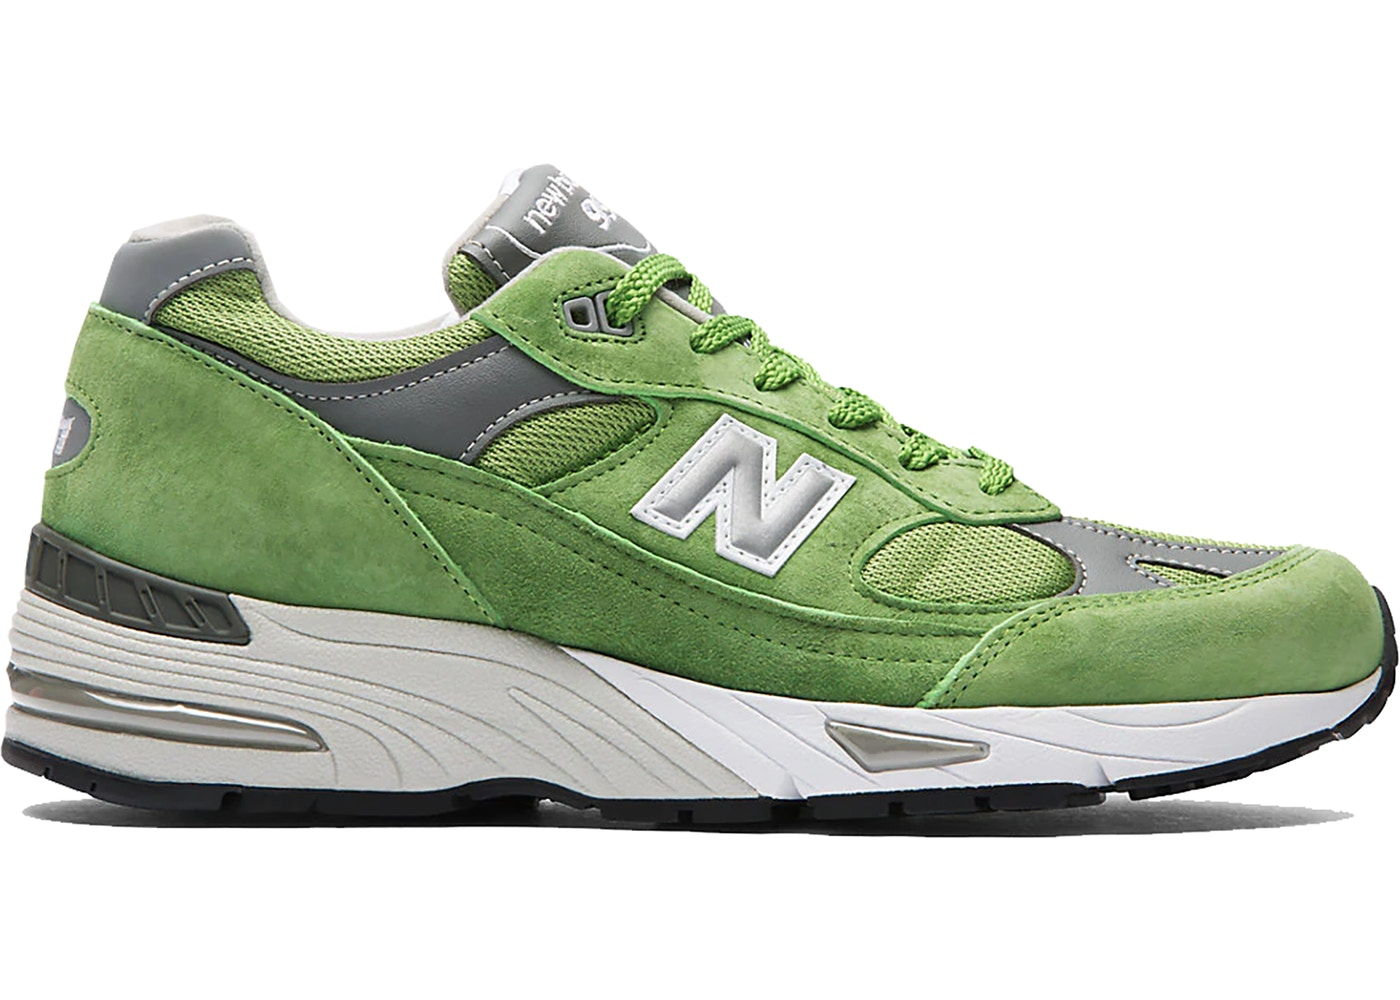 New Balance 991 Green (Made in UK) - Sneakers